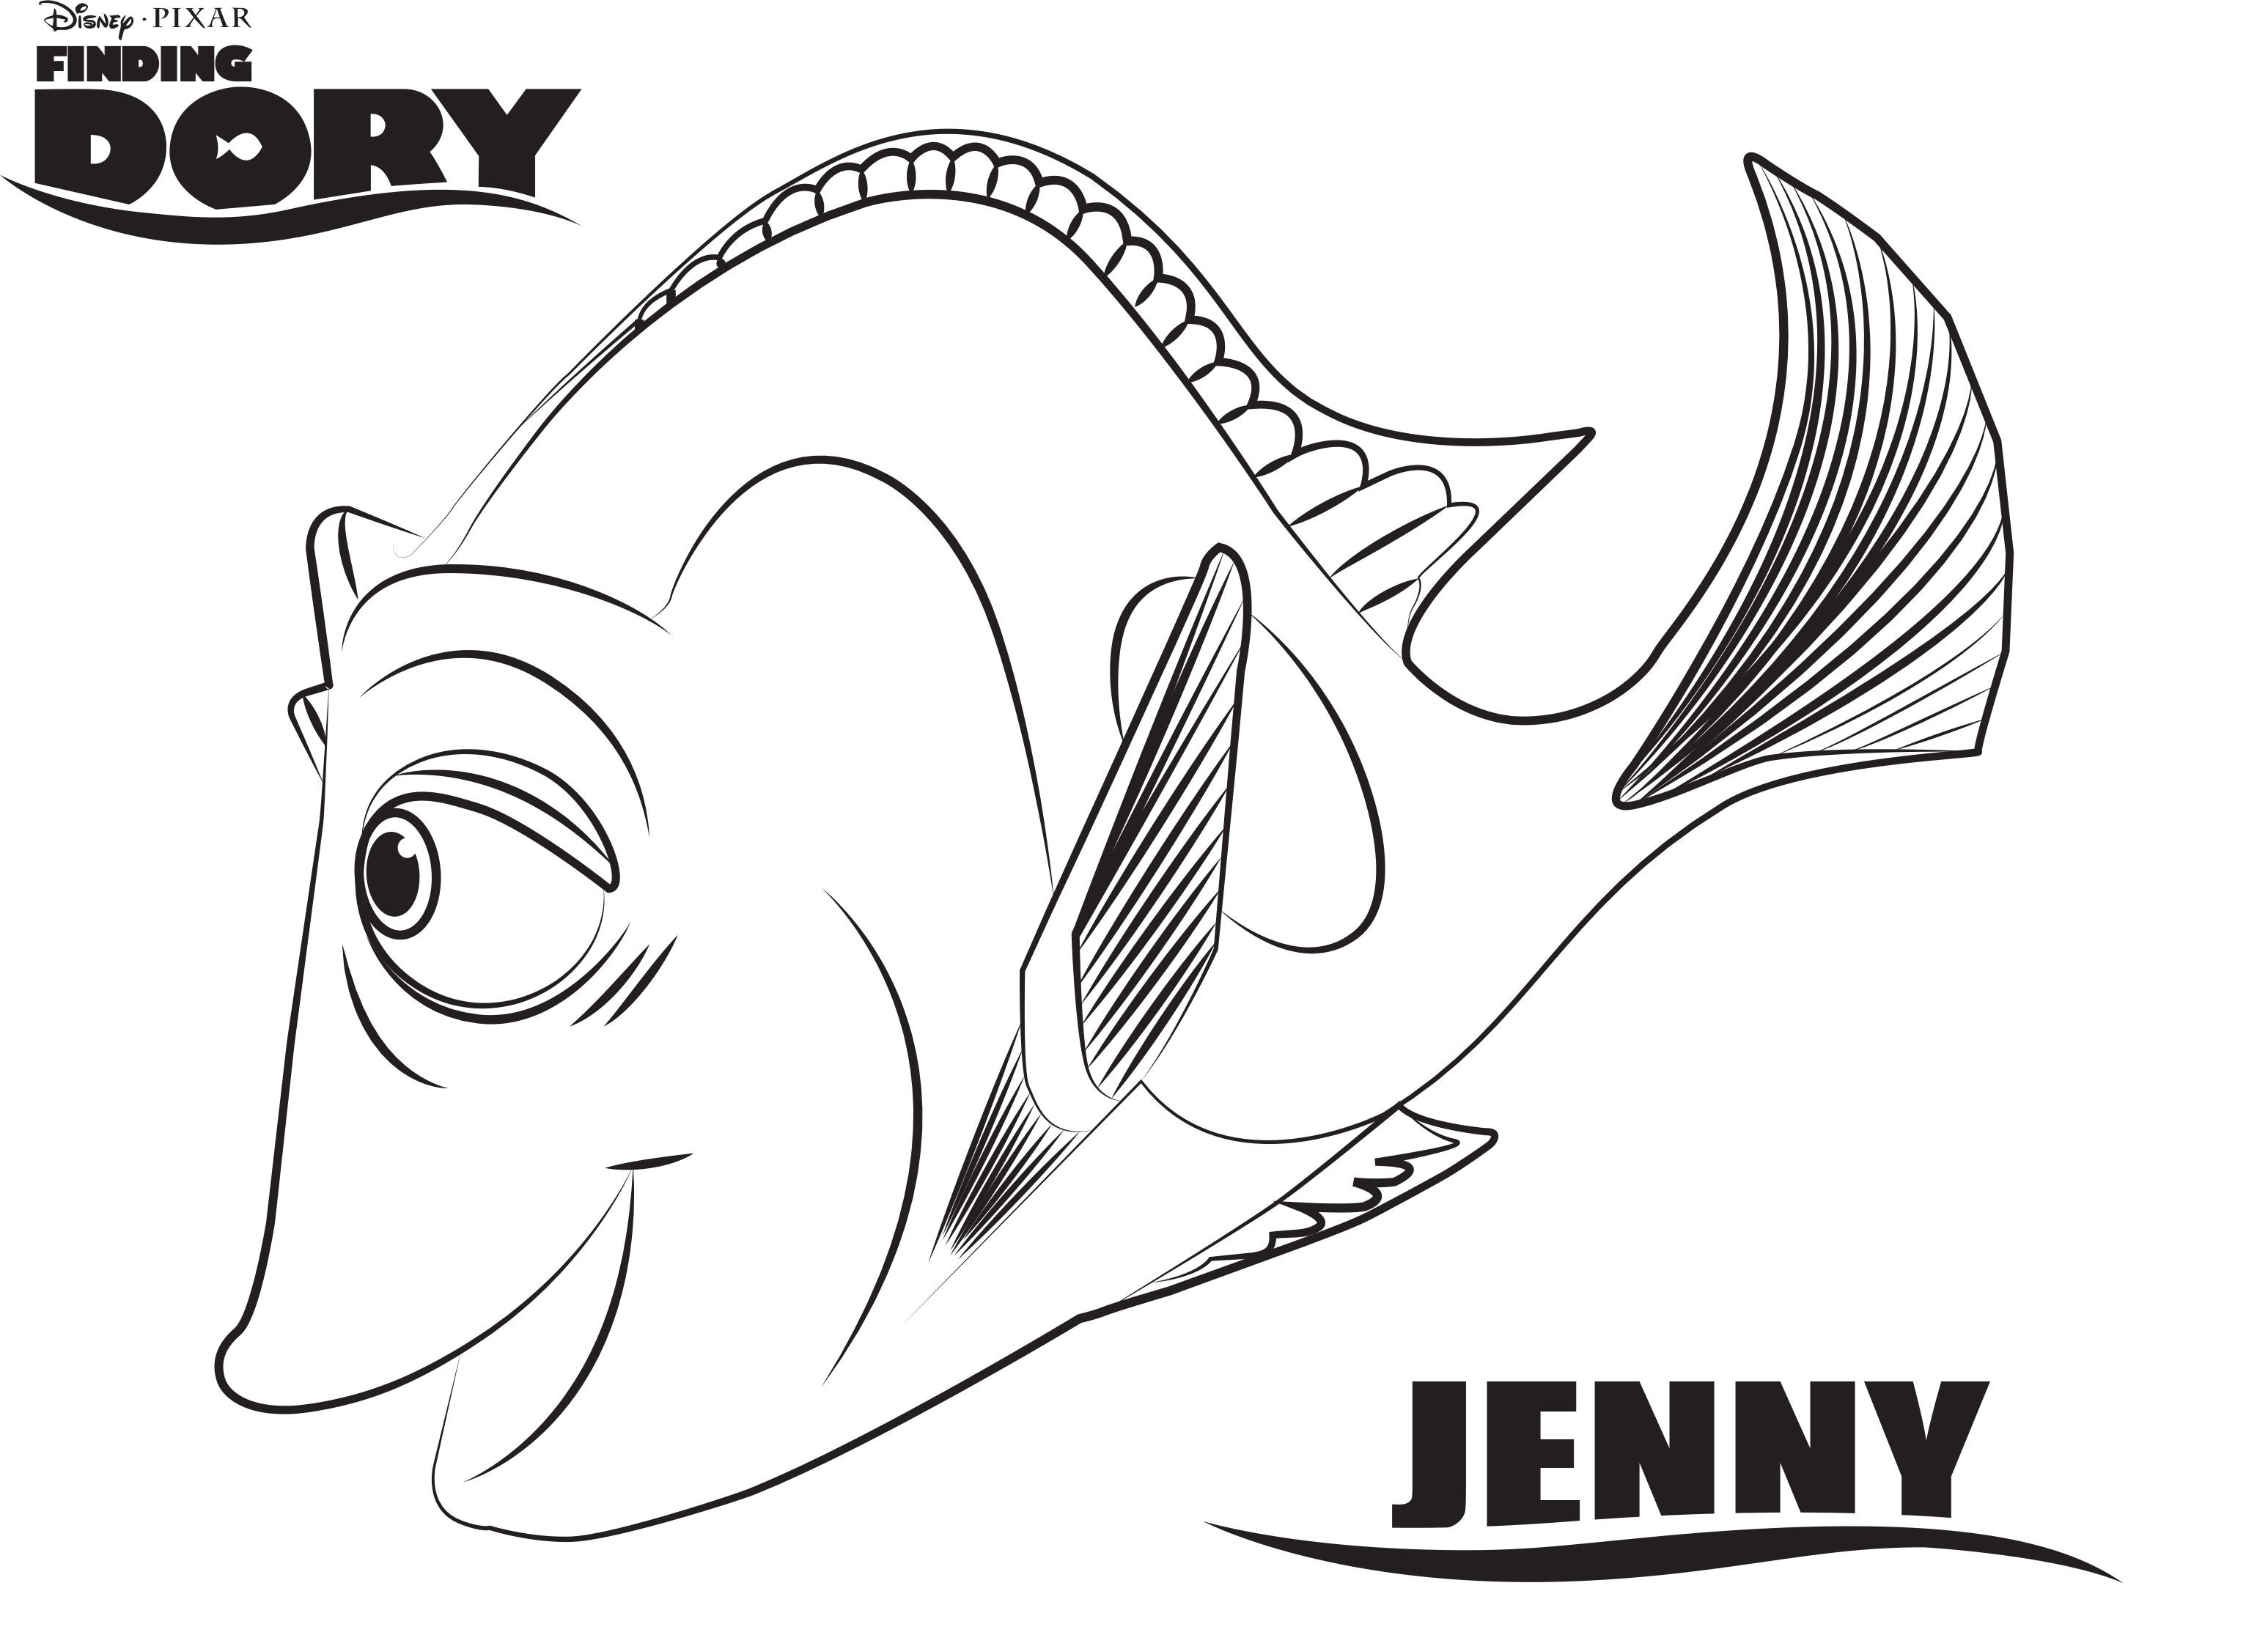 Mobile shimmer and shine coloring games coloring pages ausmalbilder - Disney S Finding Dory Coloring Pages Sheet Free Disney Printable Finding Dory Color Page